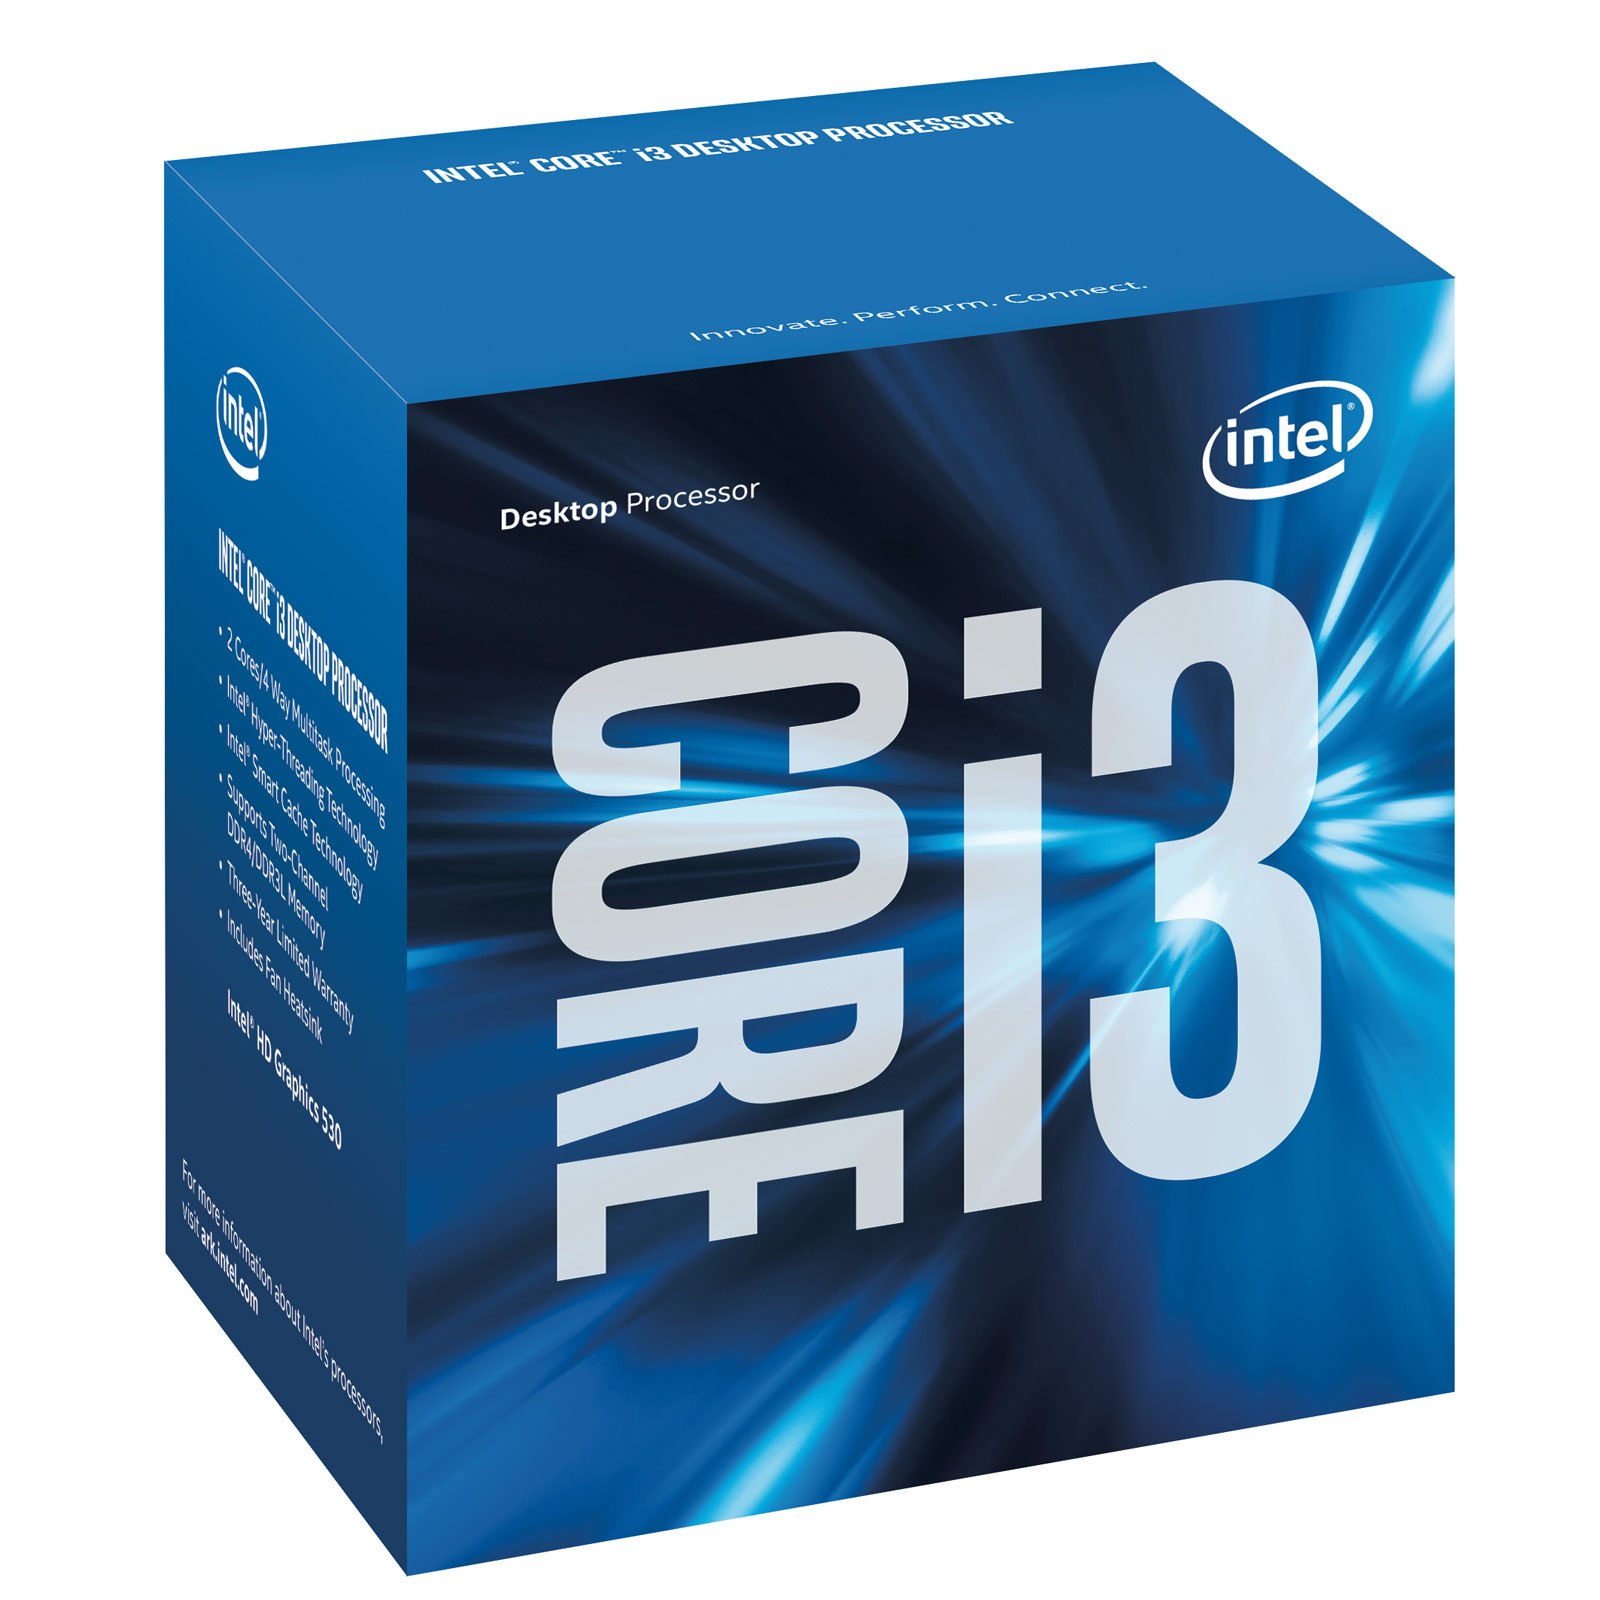 Processeur Intel Core i3 6100 Dual Core (3.70 GHz) Socket 1151 - Cache 3 Mo (Box), informatique ile de la réunion